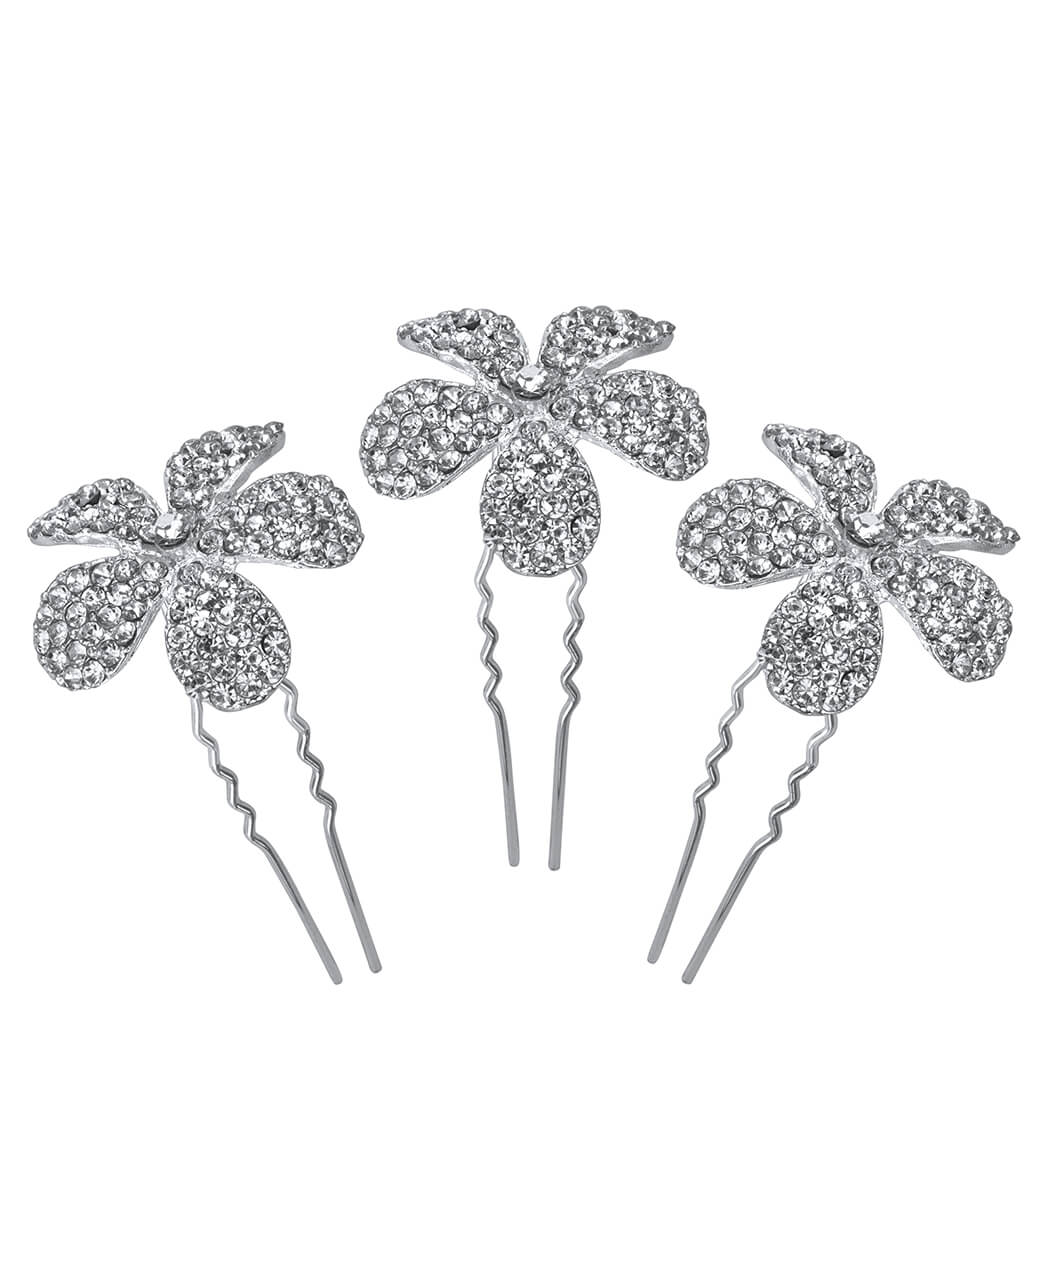 Crystal Flower Hair Pin - 3 pcs